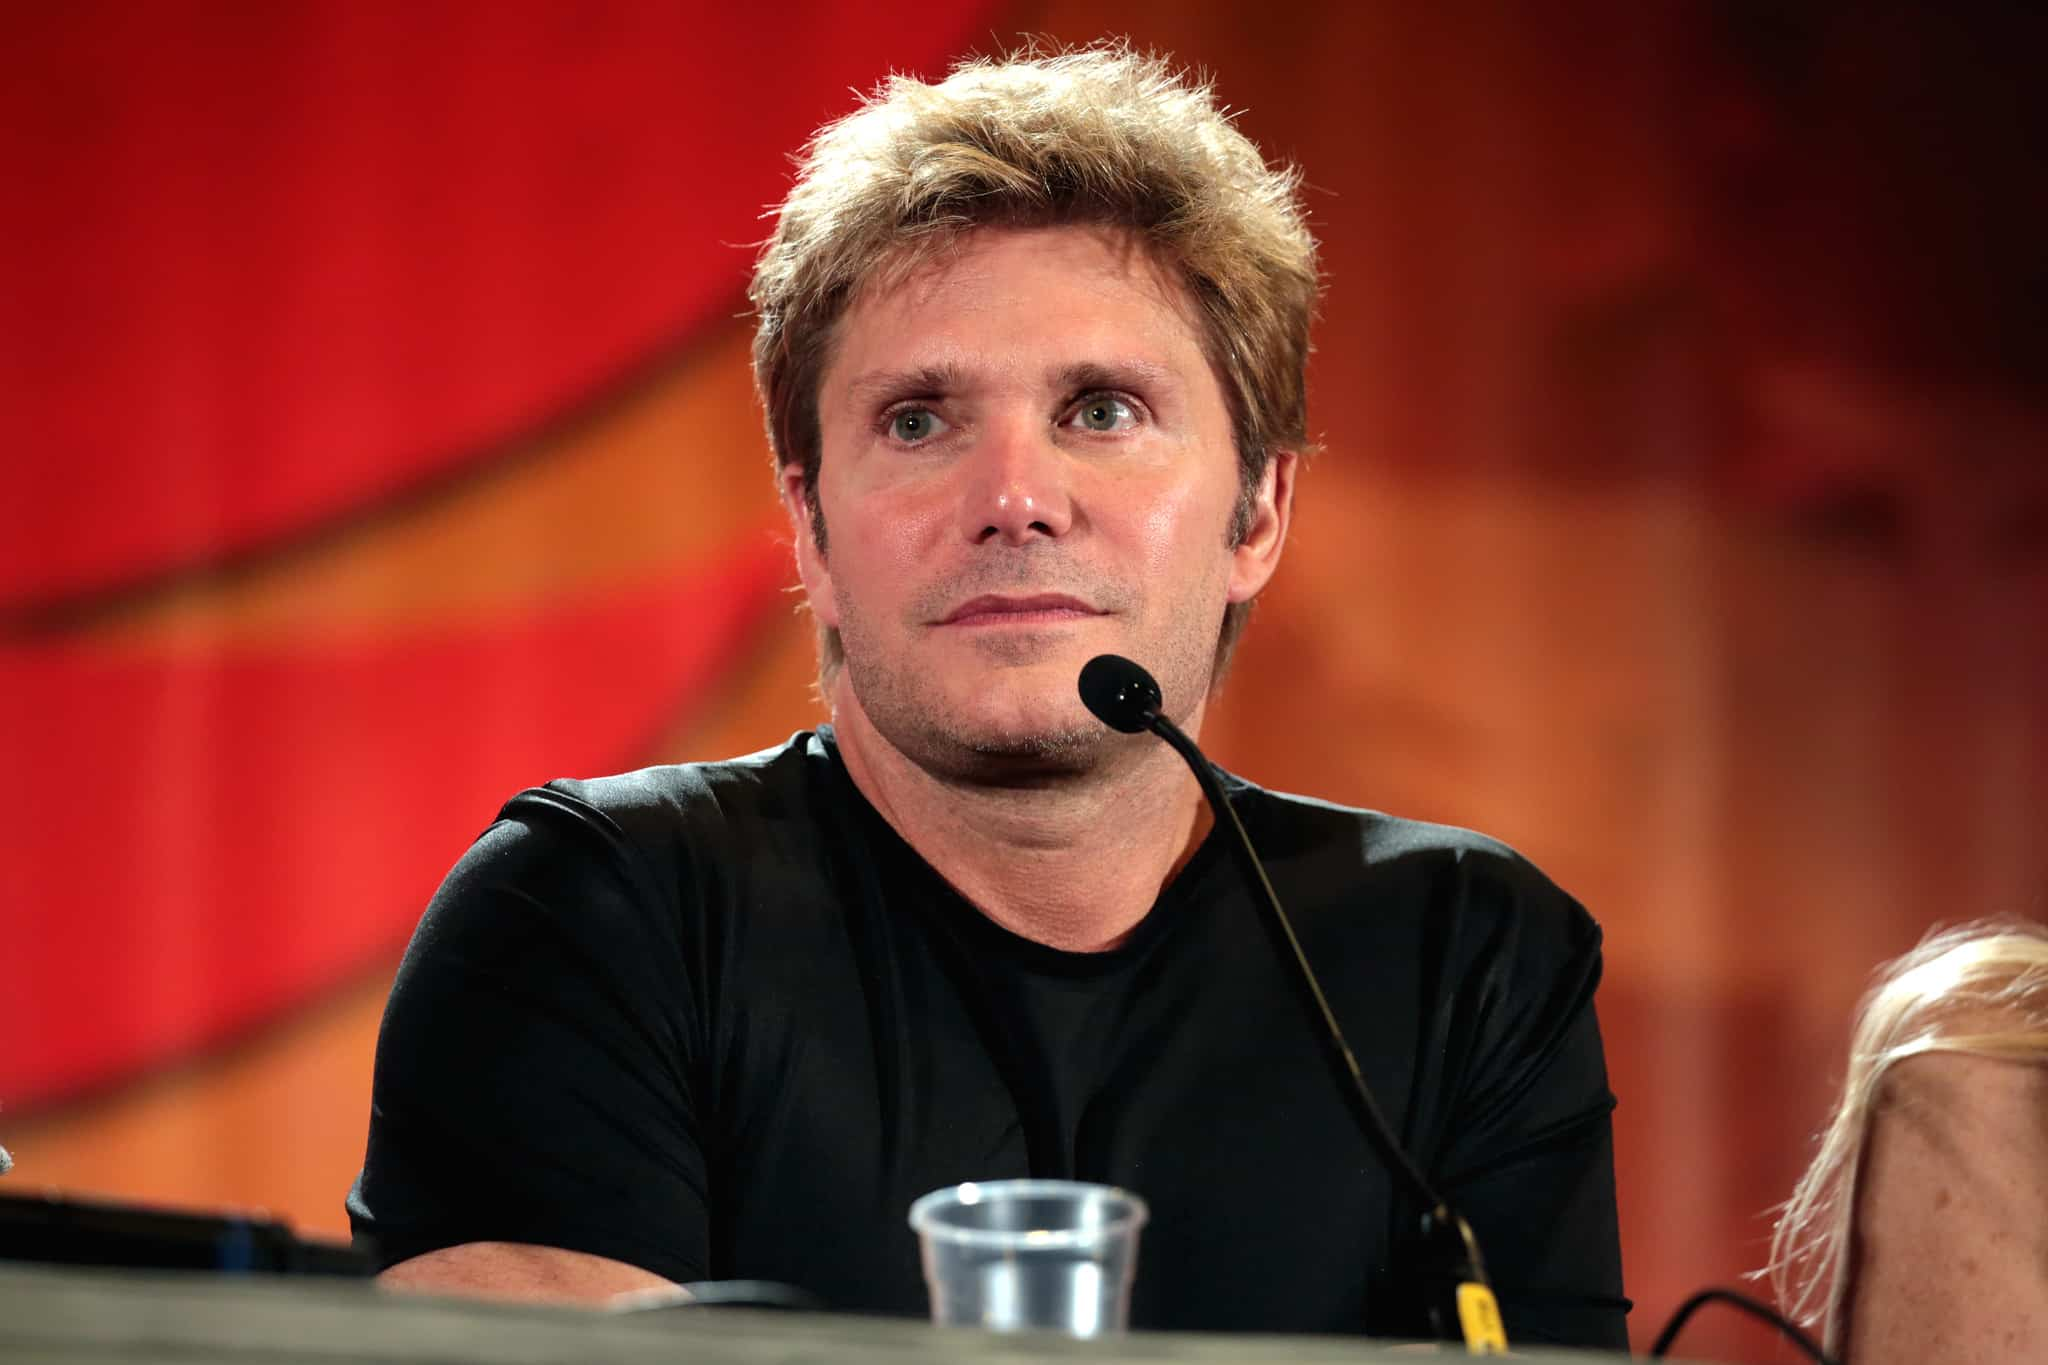 The Firing Of Vic Mignogna From Funimation